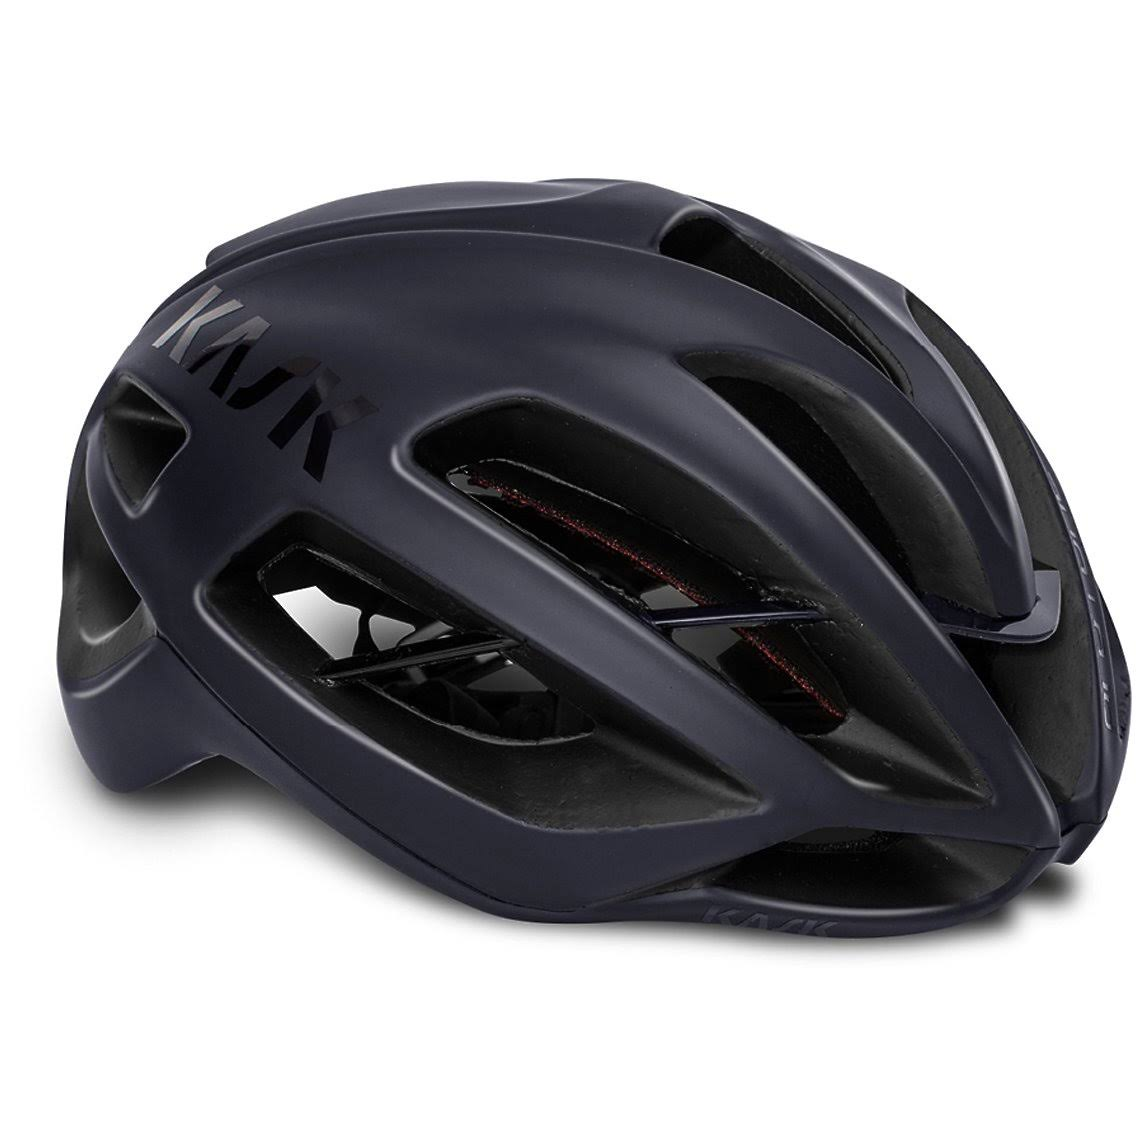 Kask Protone Road Cycling Helmet - Matte Blue, Medium